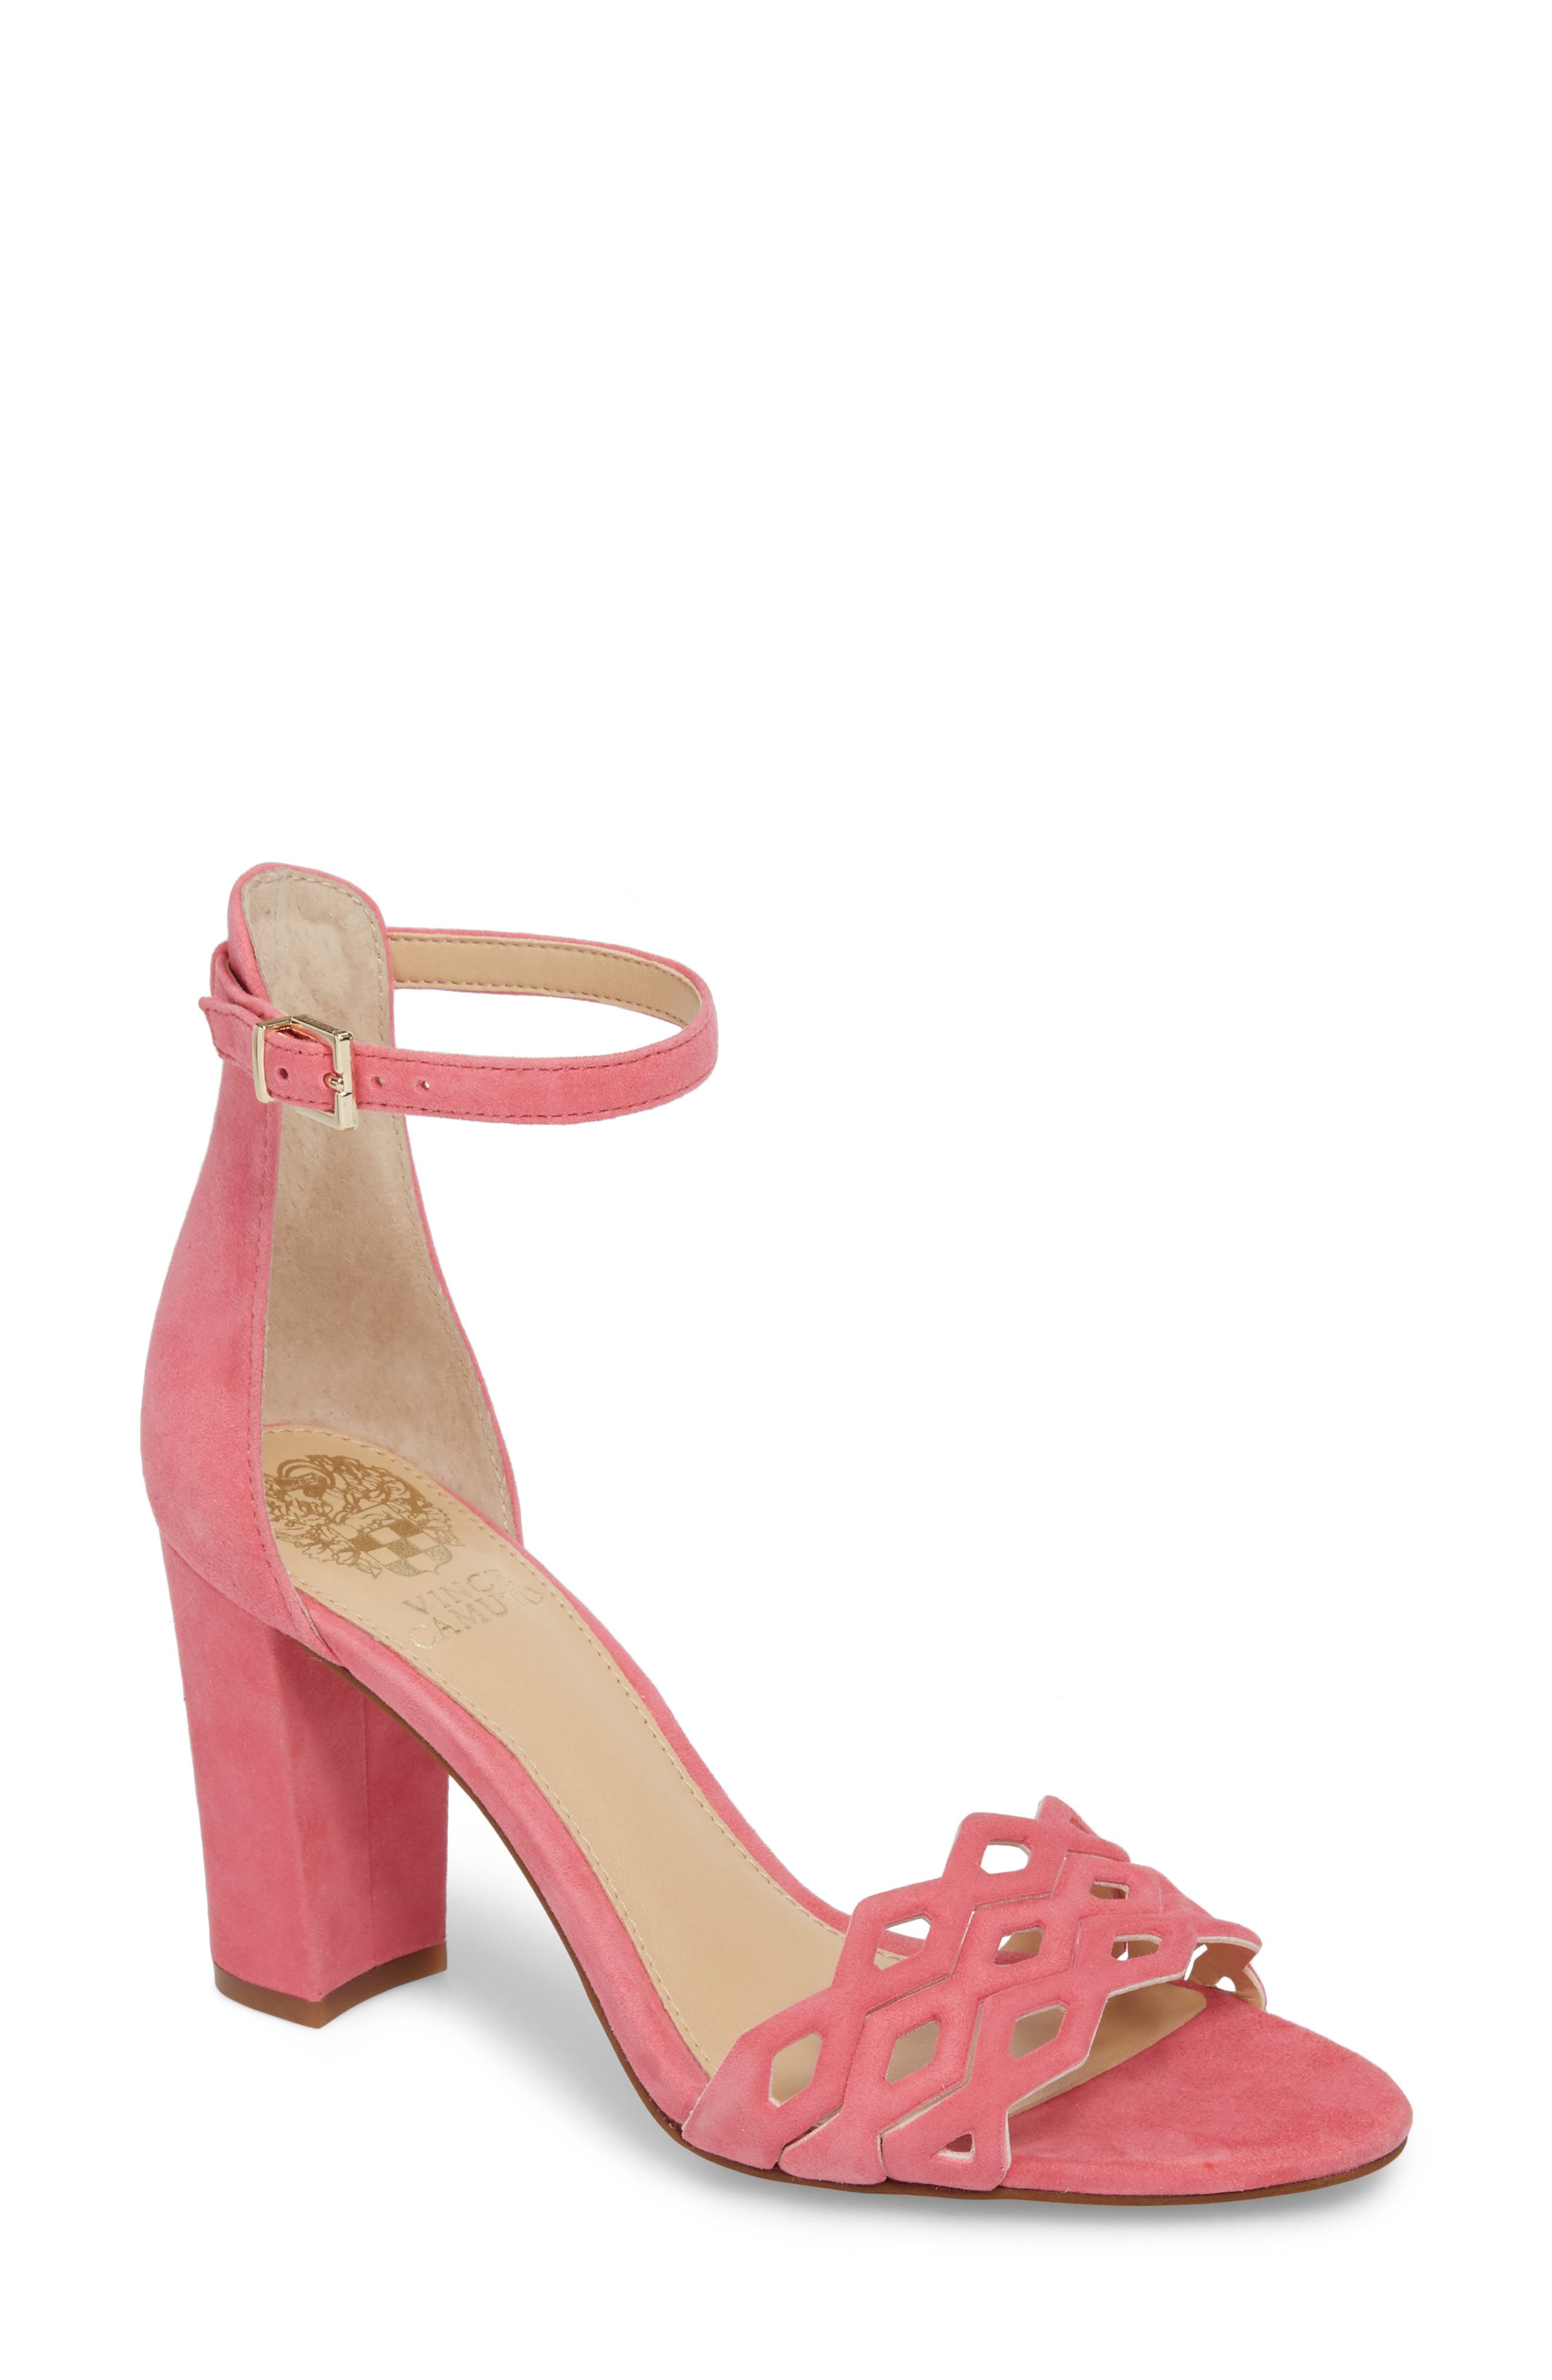 Caveena Block Heel Sandal,                         Main,                         color, Soft Pink Suede